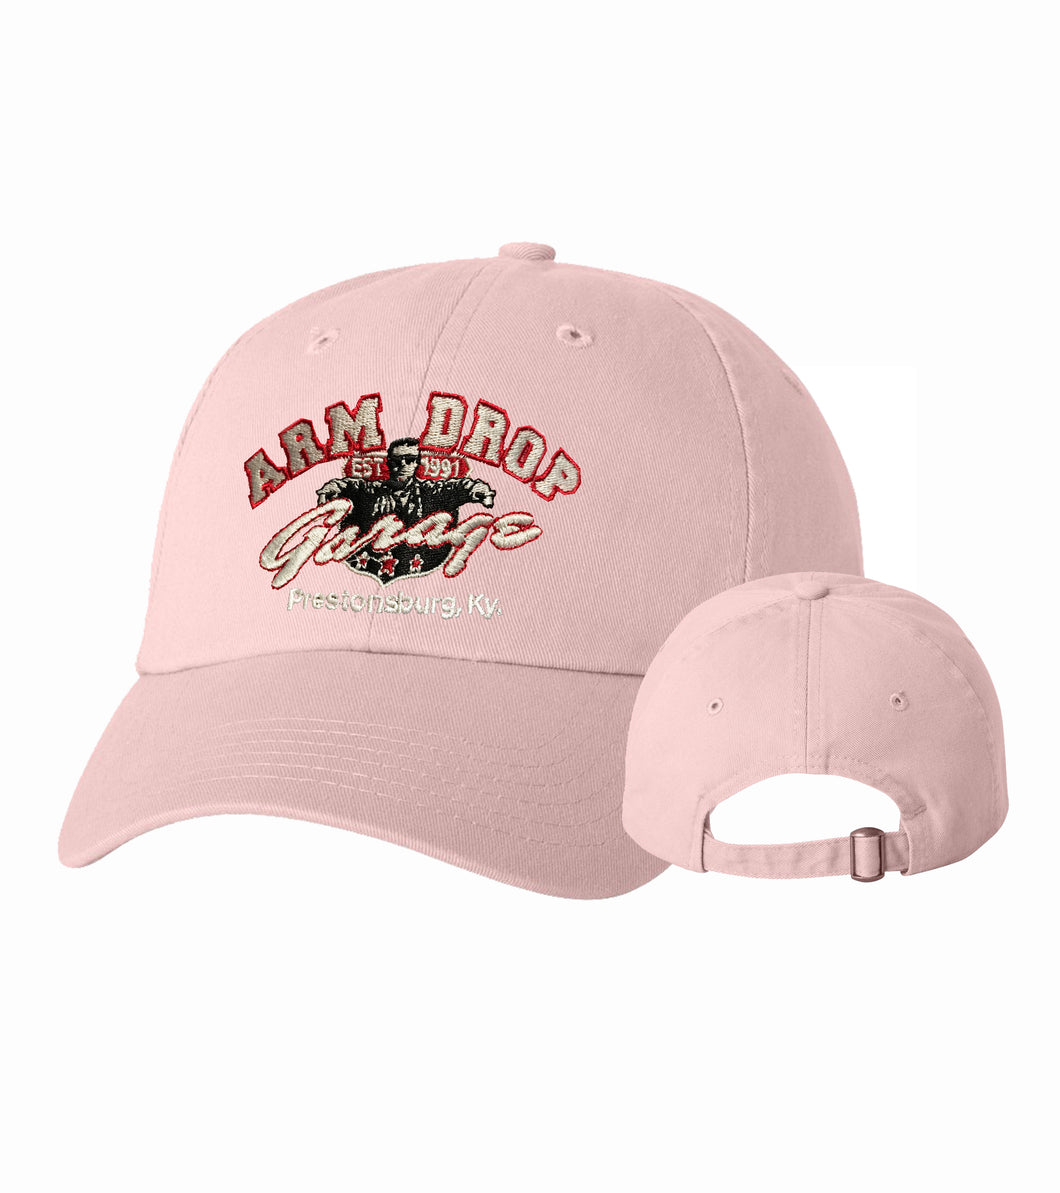 Light Pink Arm Drop Garage Twill Unstructured Cap